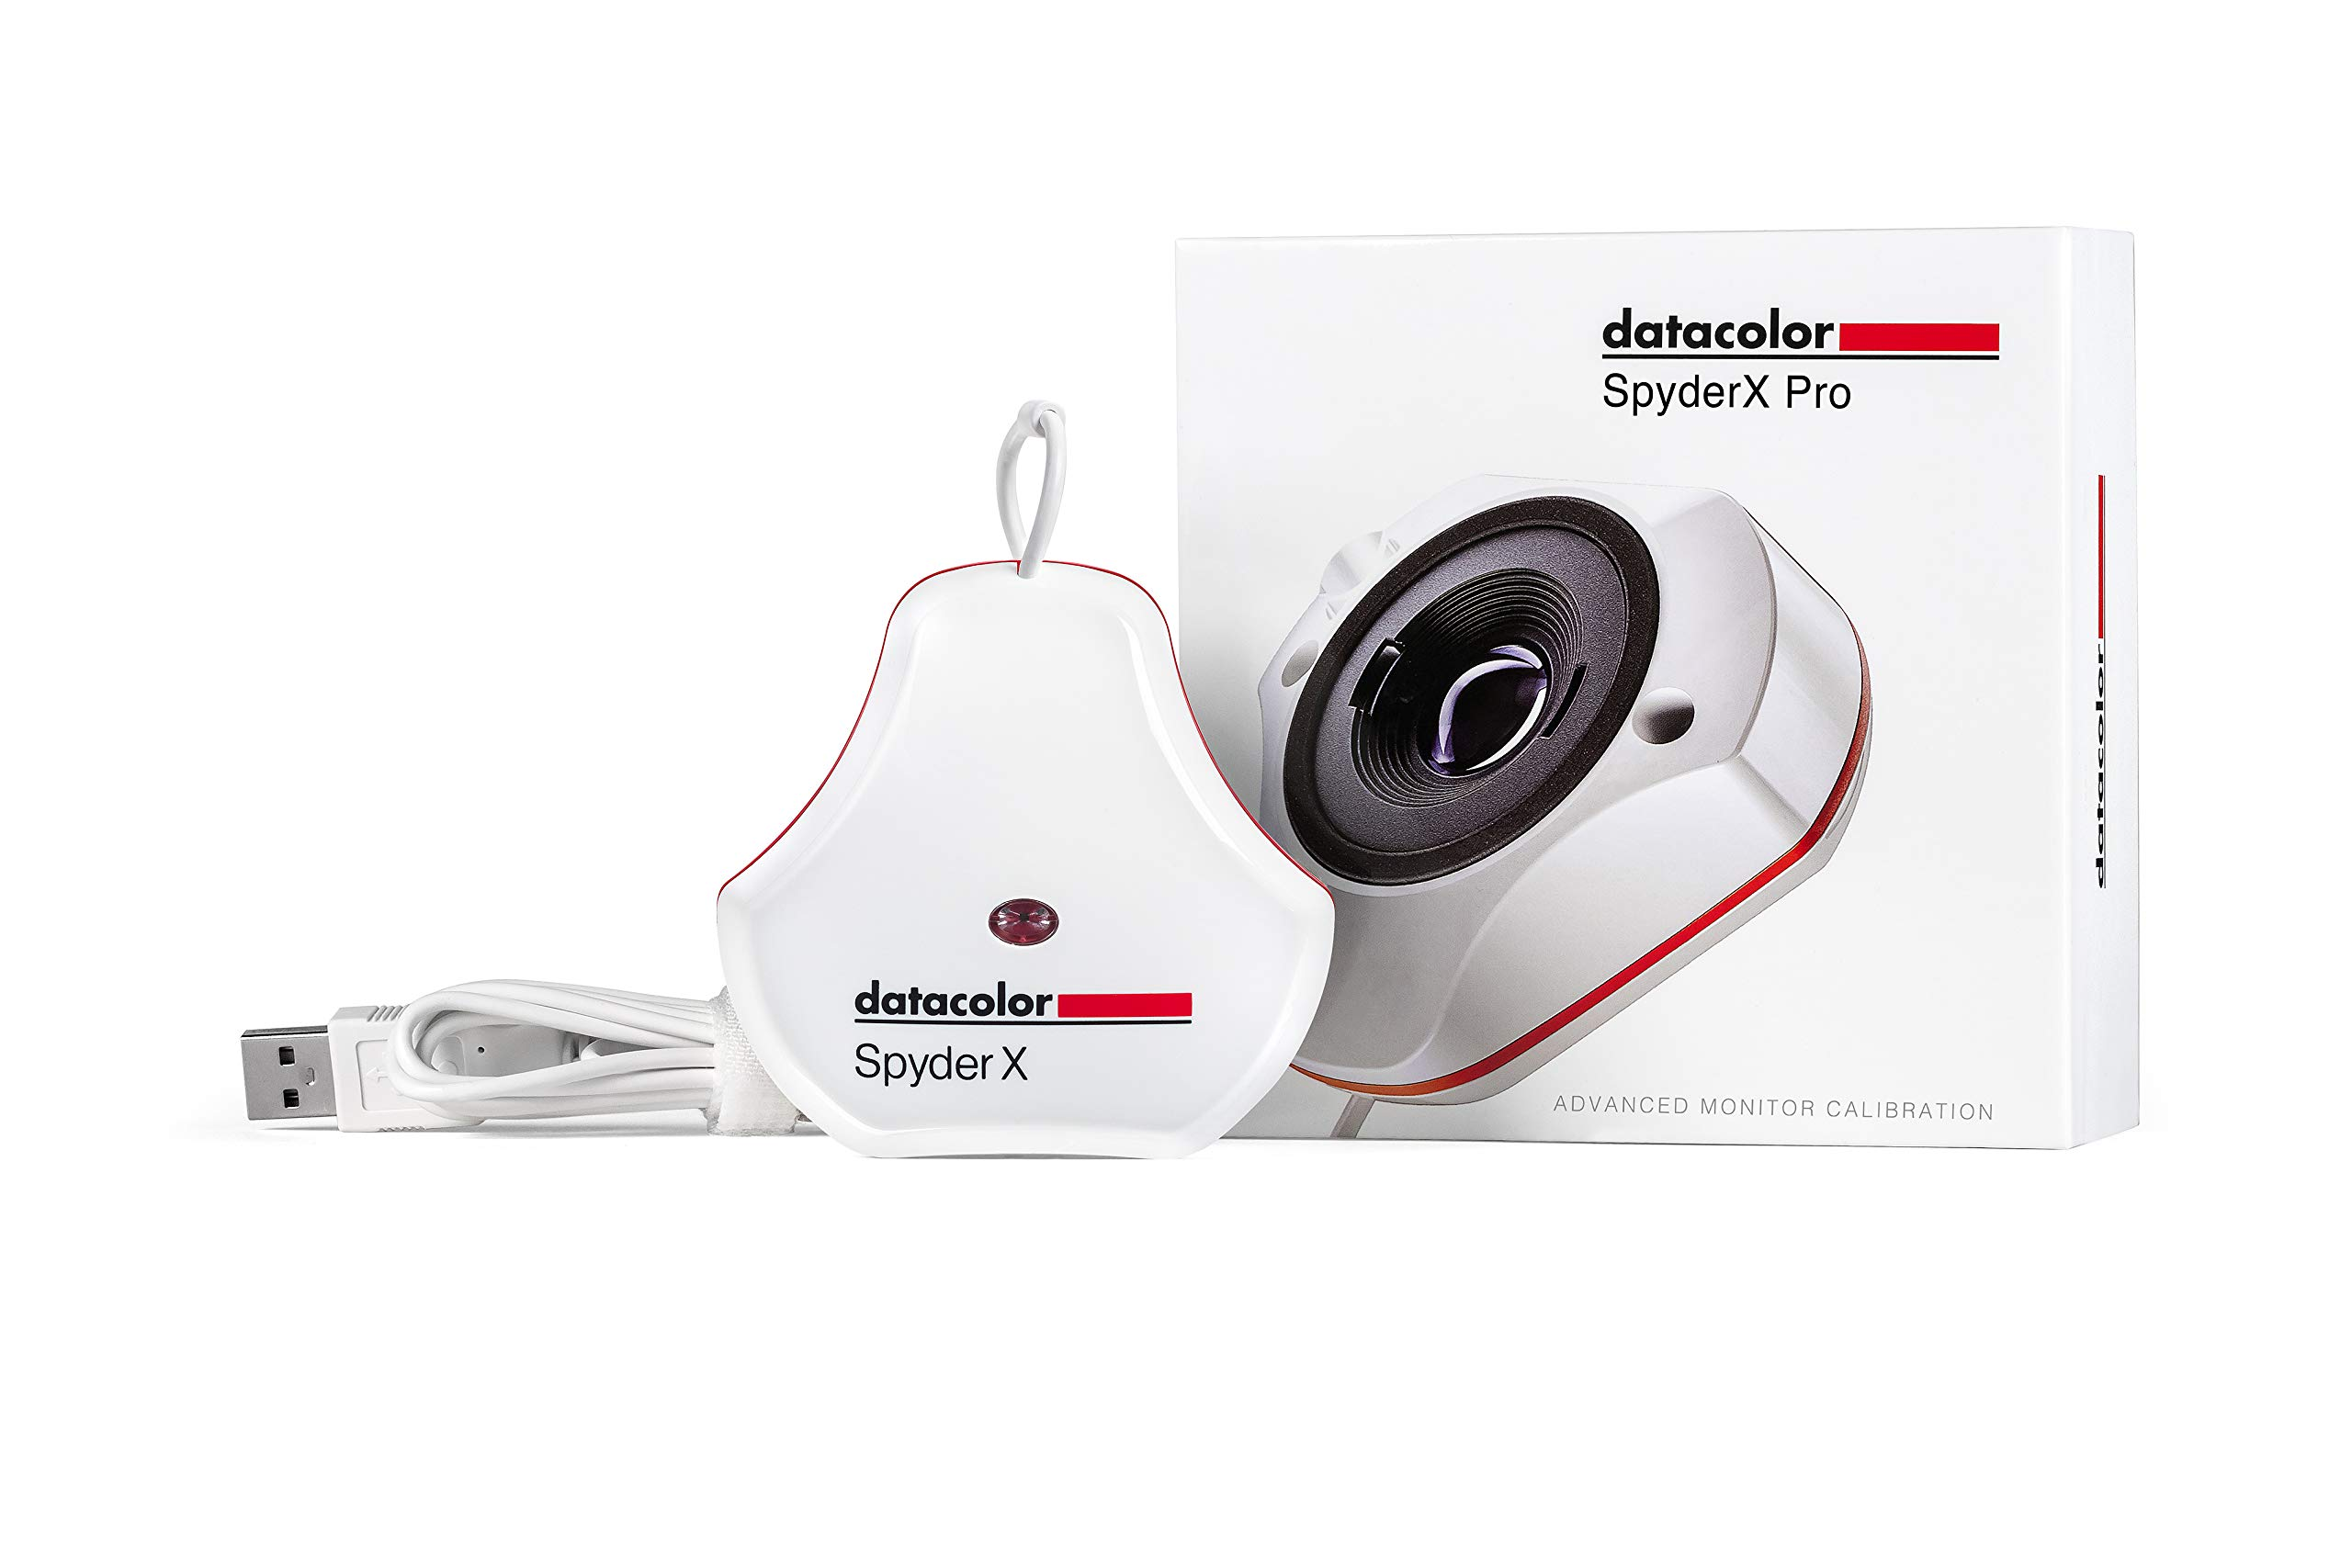 Datacolor SpyderX Pro - Monitor Calibration Designed for Serious Photographers and Designers SXP100 by Datacolor